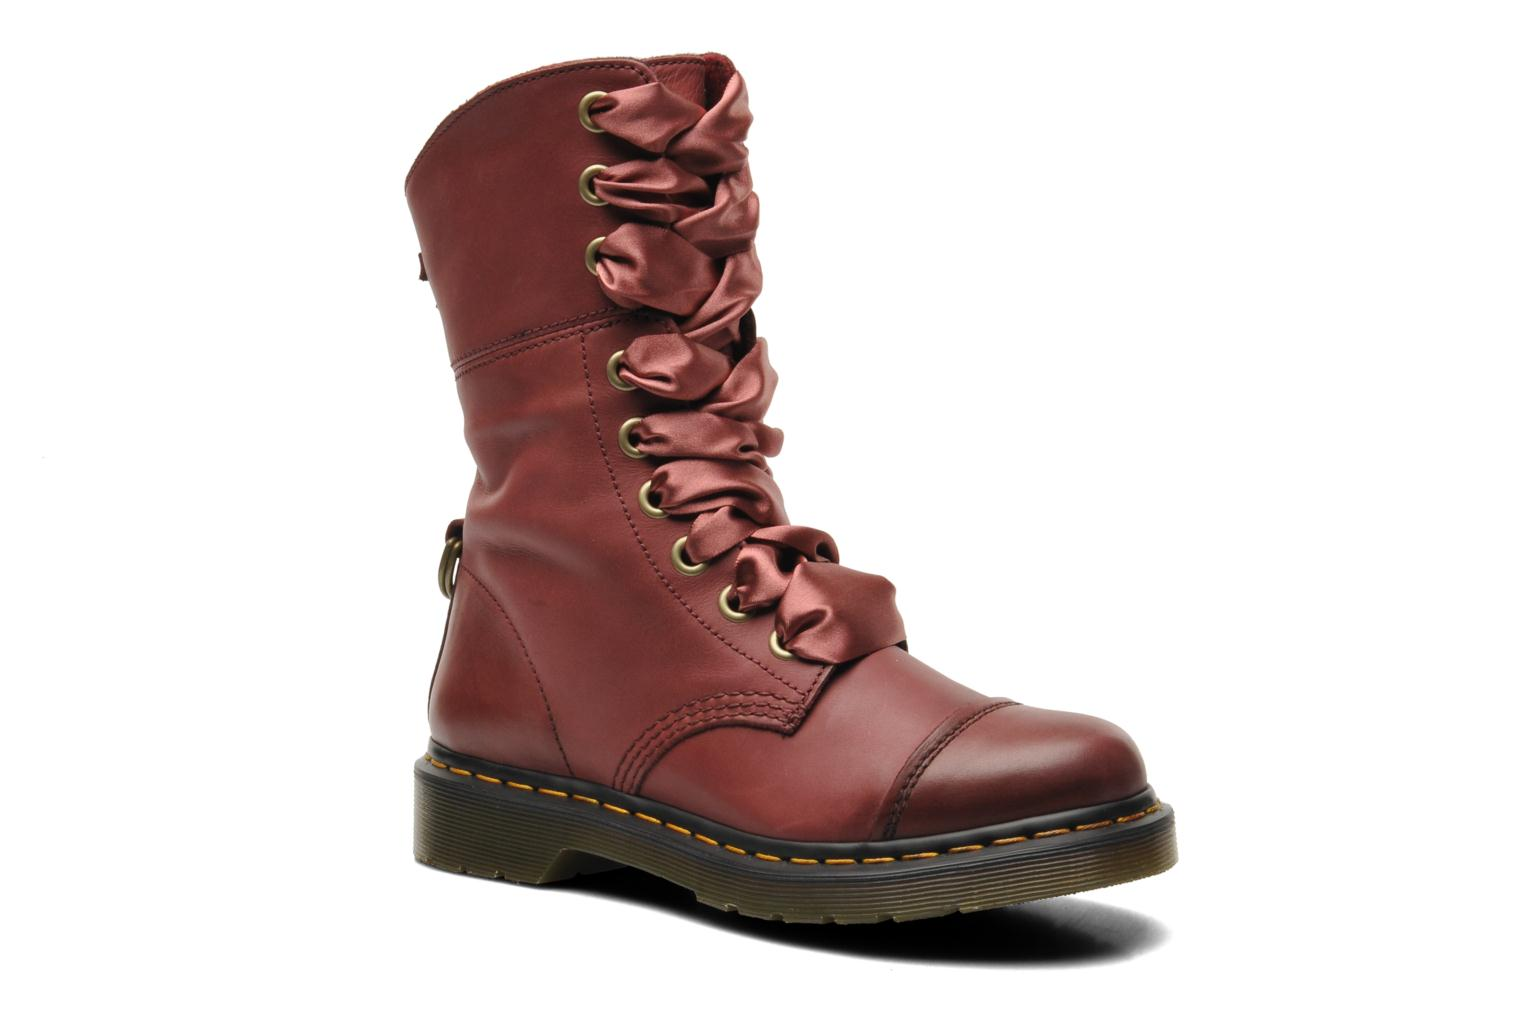 Bottes Dr Martens Aimilita Cherry Red tMdkLFf